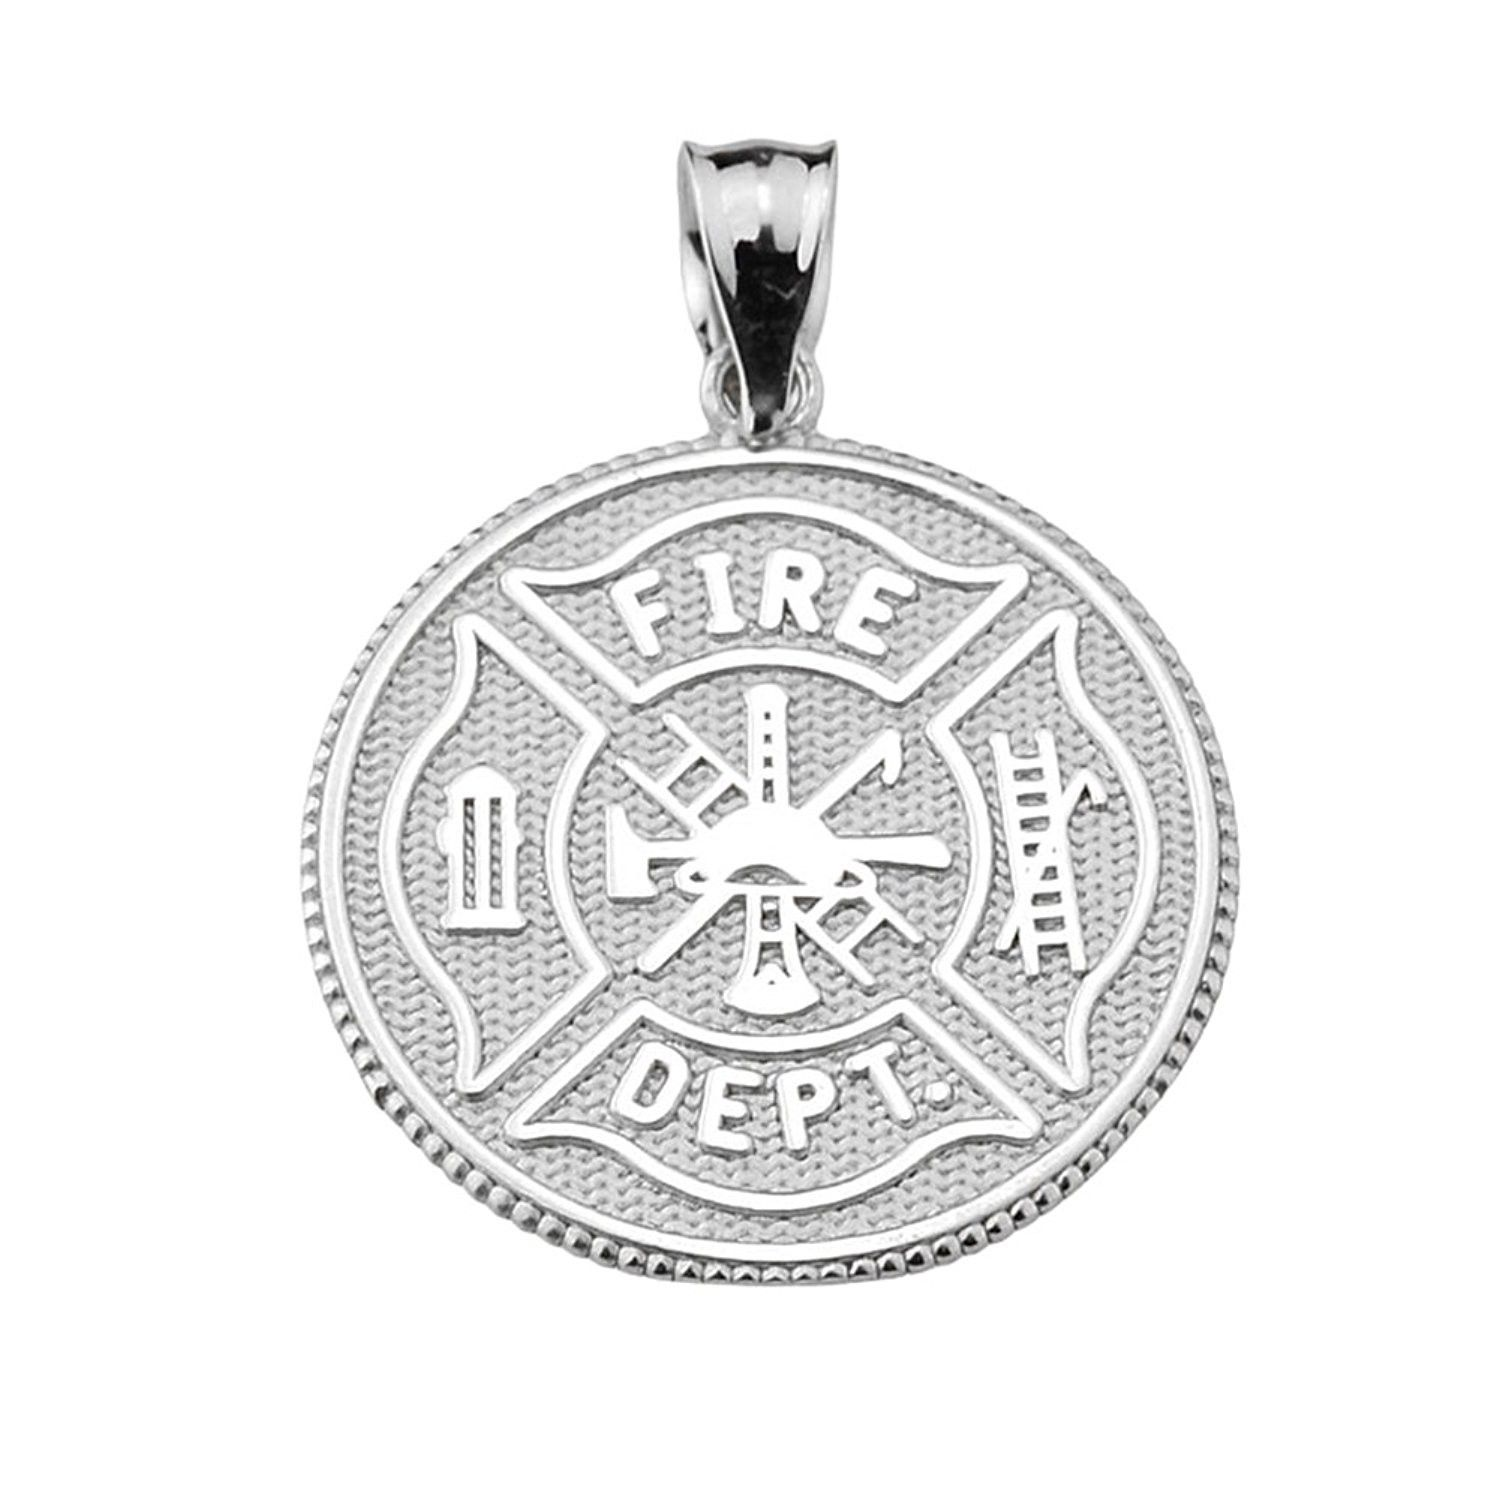 Firefighter Maltese Cross Sterling Silver With Prayer Blessing Pendant Ch1846z3cx0 Sterling Silver Pendants Trendy Necklaces Cross Pendant